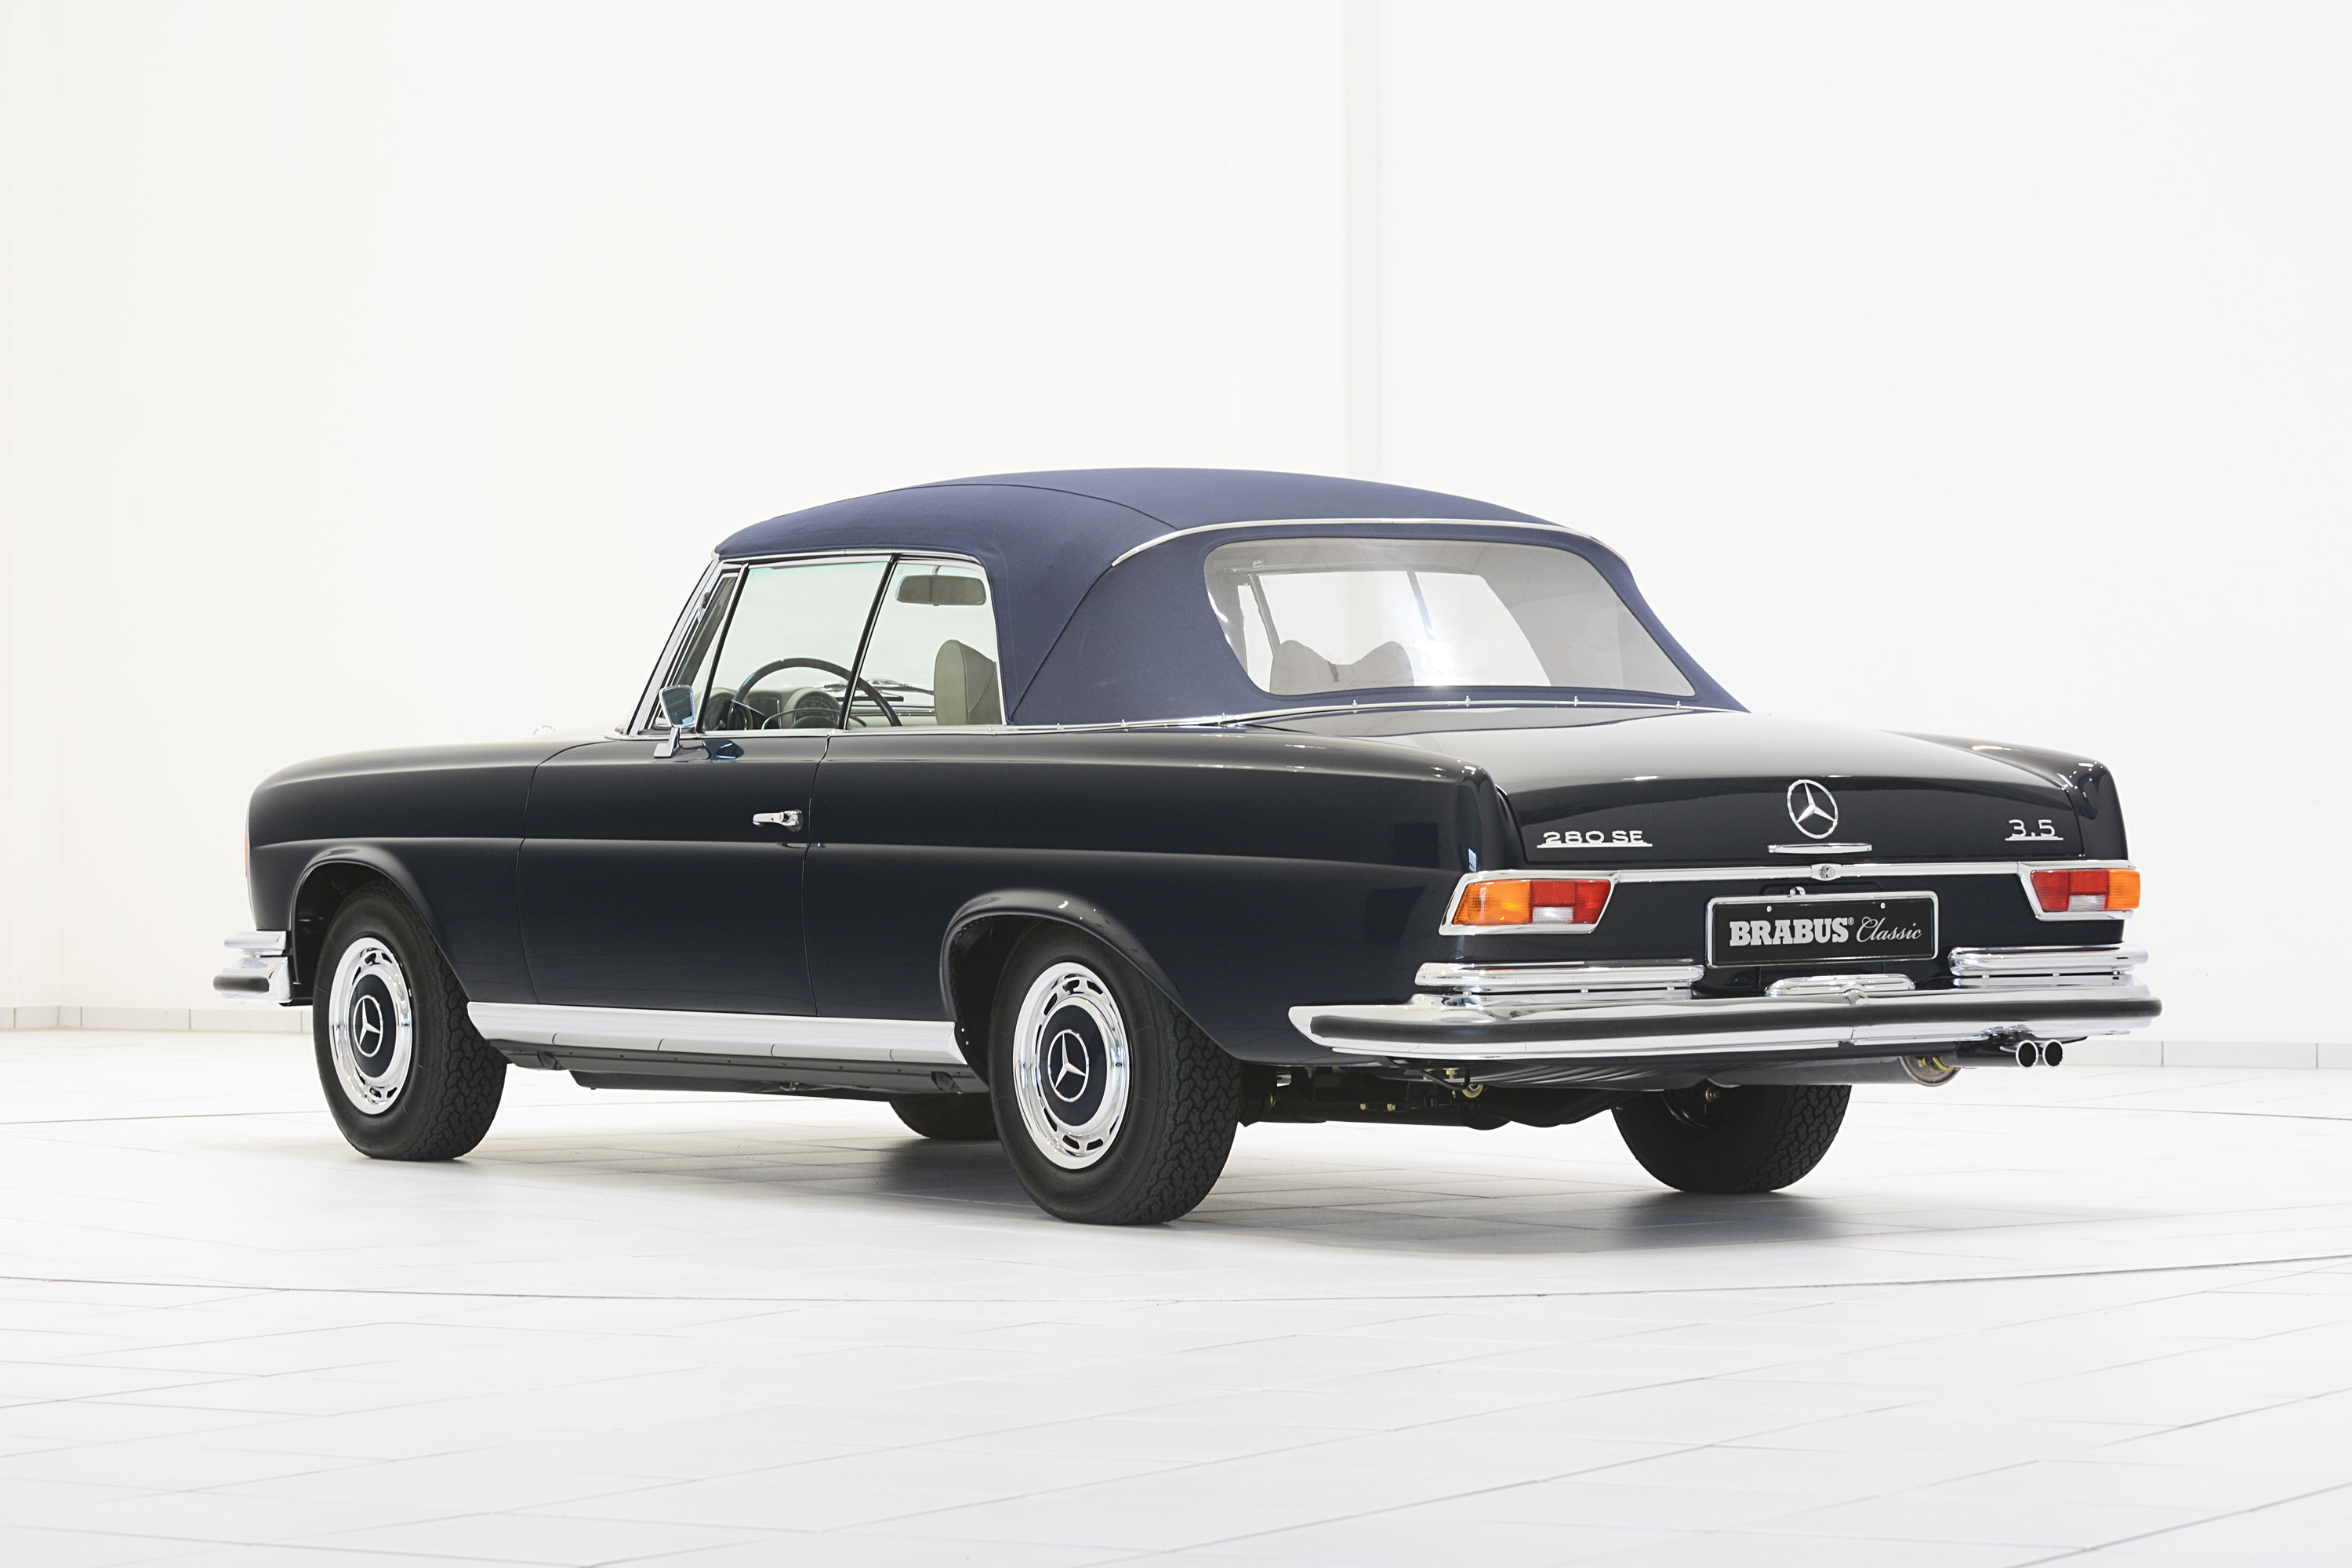 brabus classic mercedes benz 280 se 3 5 cabriolet w111 picture 104957. Black Bedroom Furniture Sets. Home Design Ideas